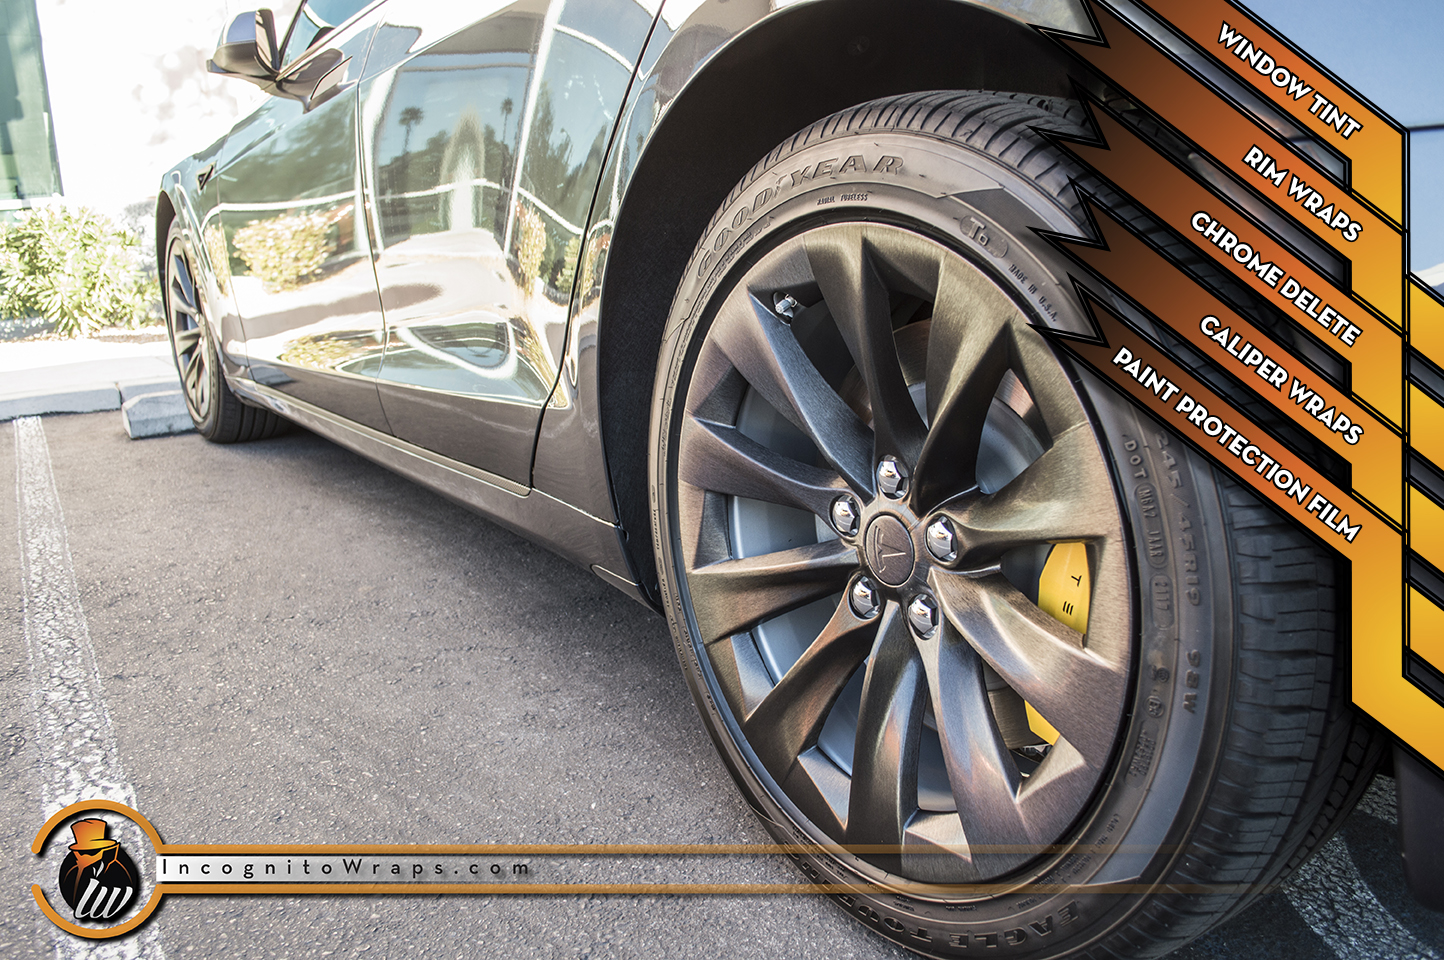 Tesla Model S - Brushed Chrome Delete and Rims withe Yellow Calipers